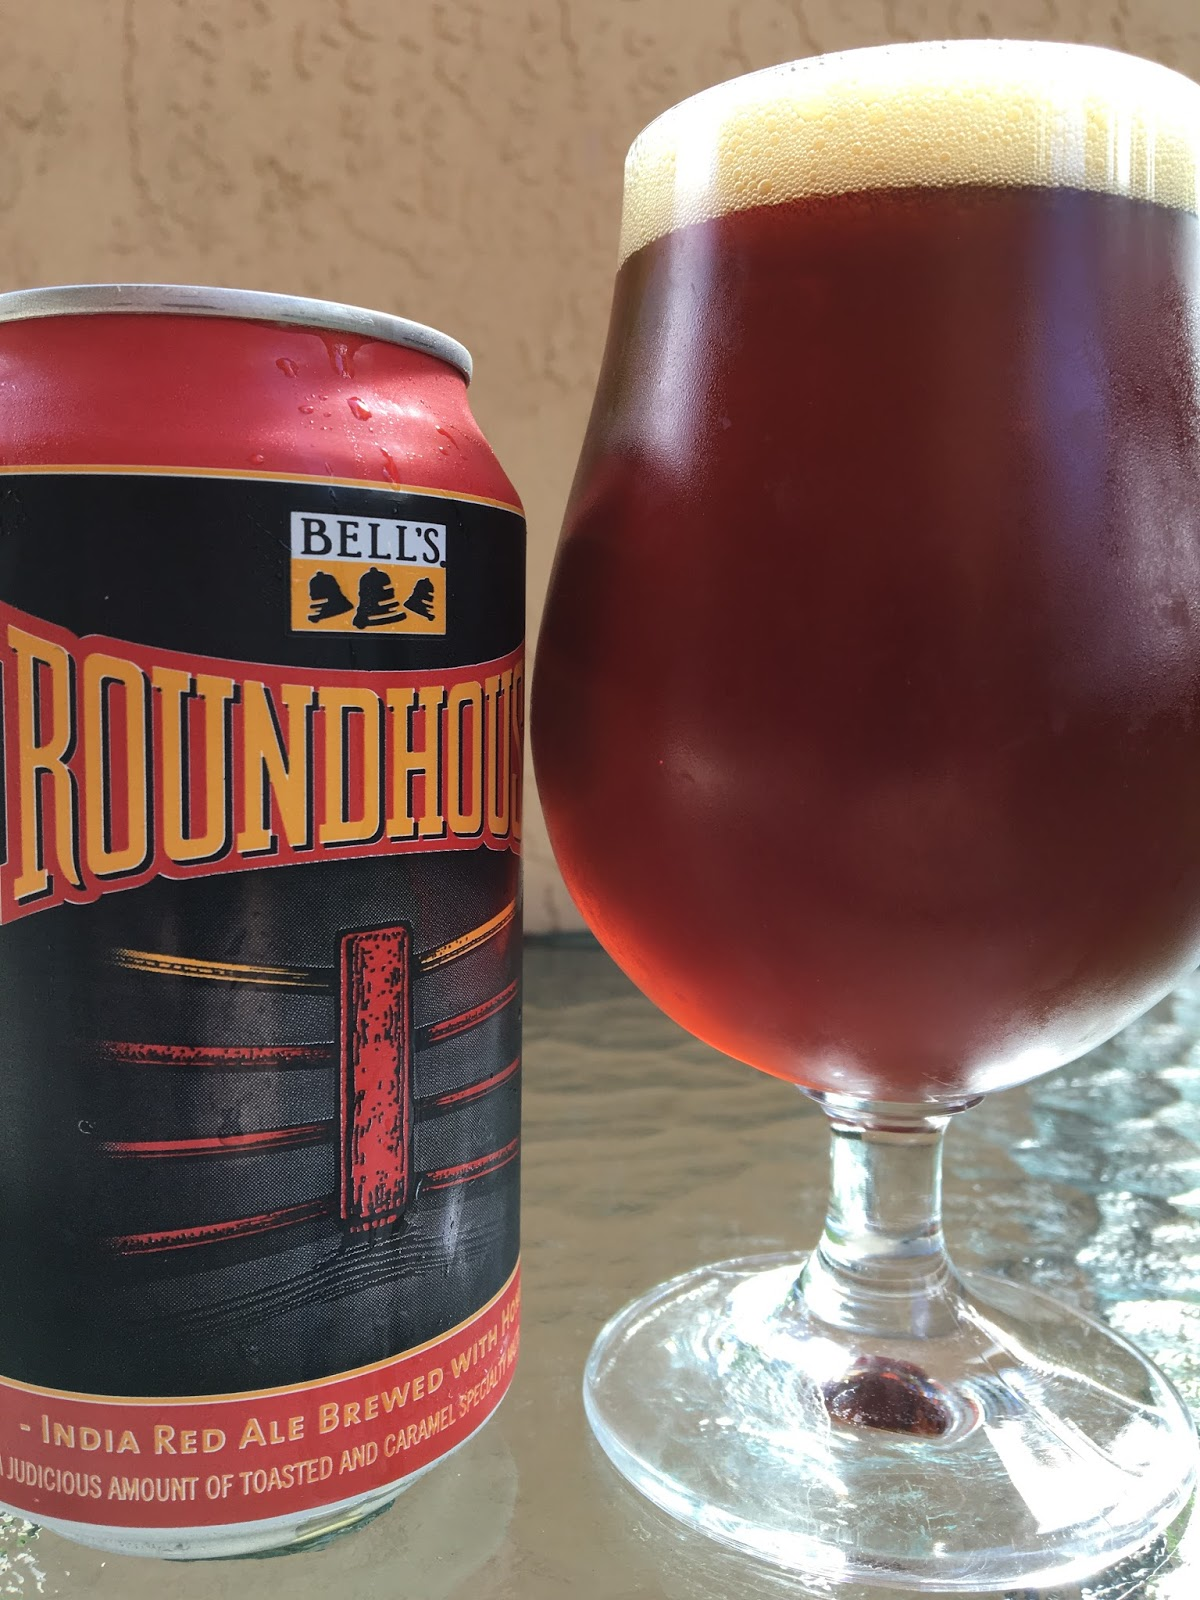 Daily Beer Review: Roundhouse India Red Ale